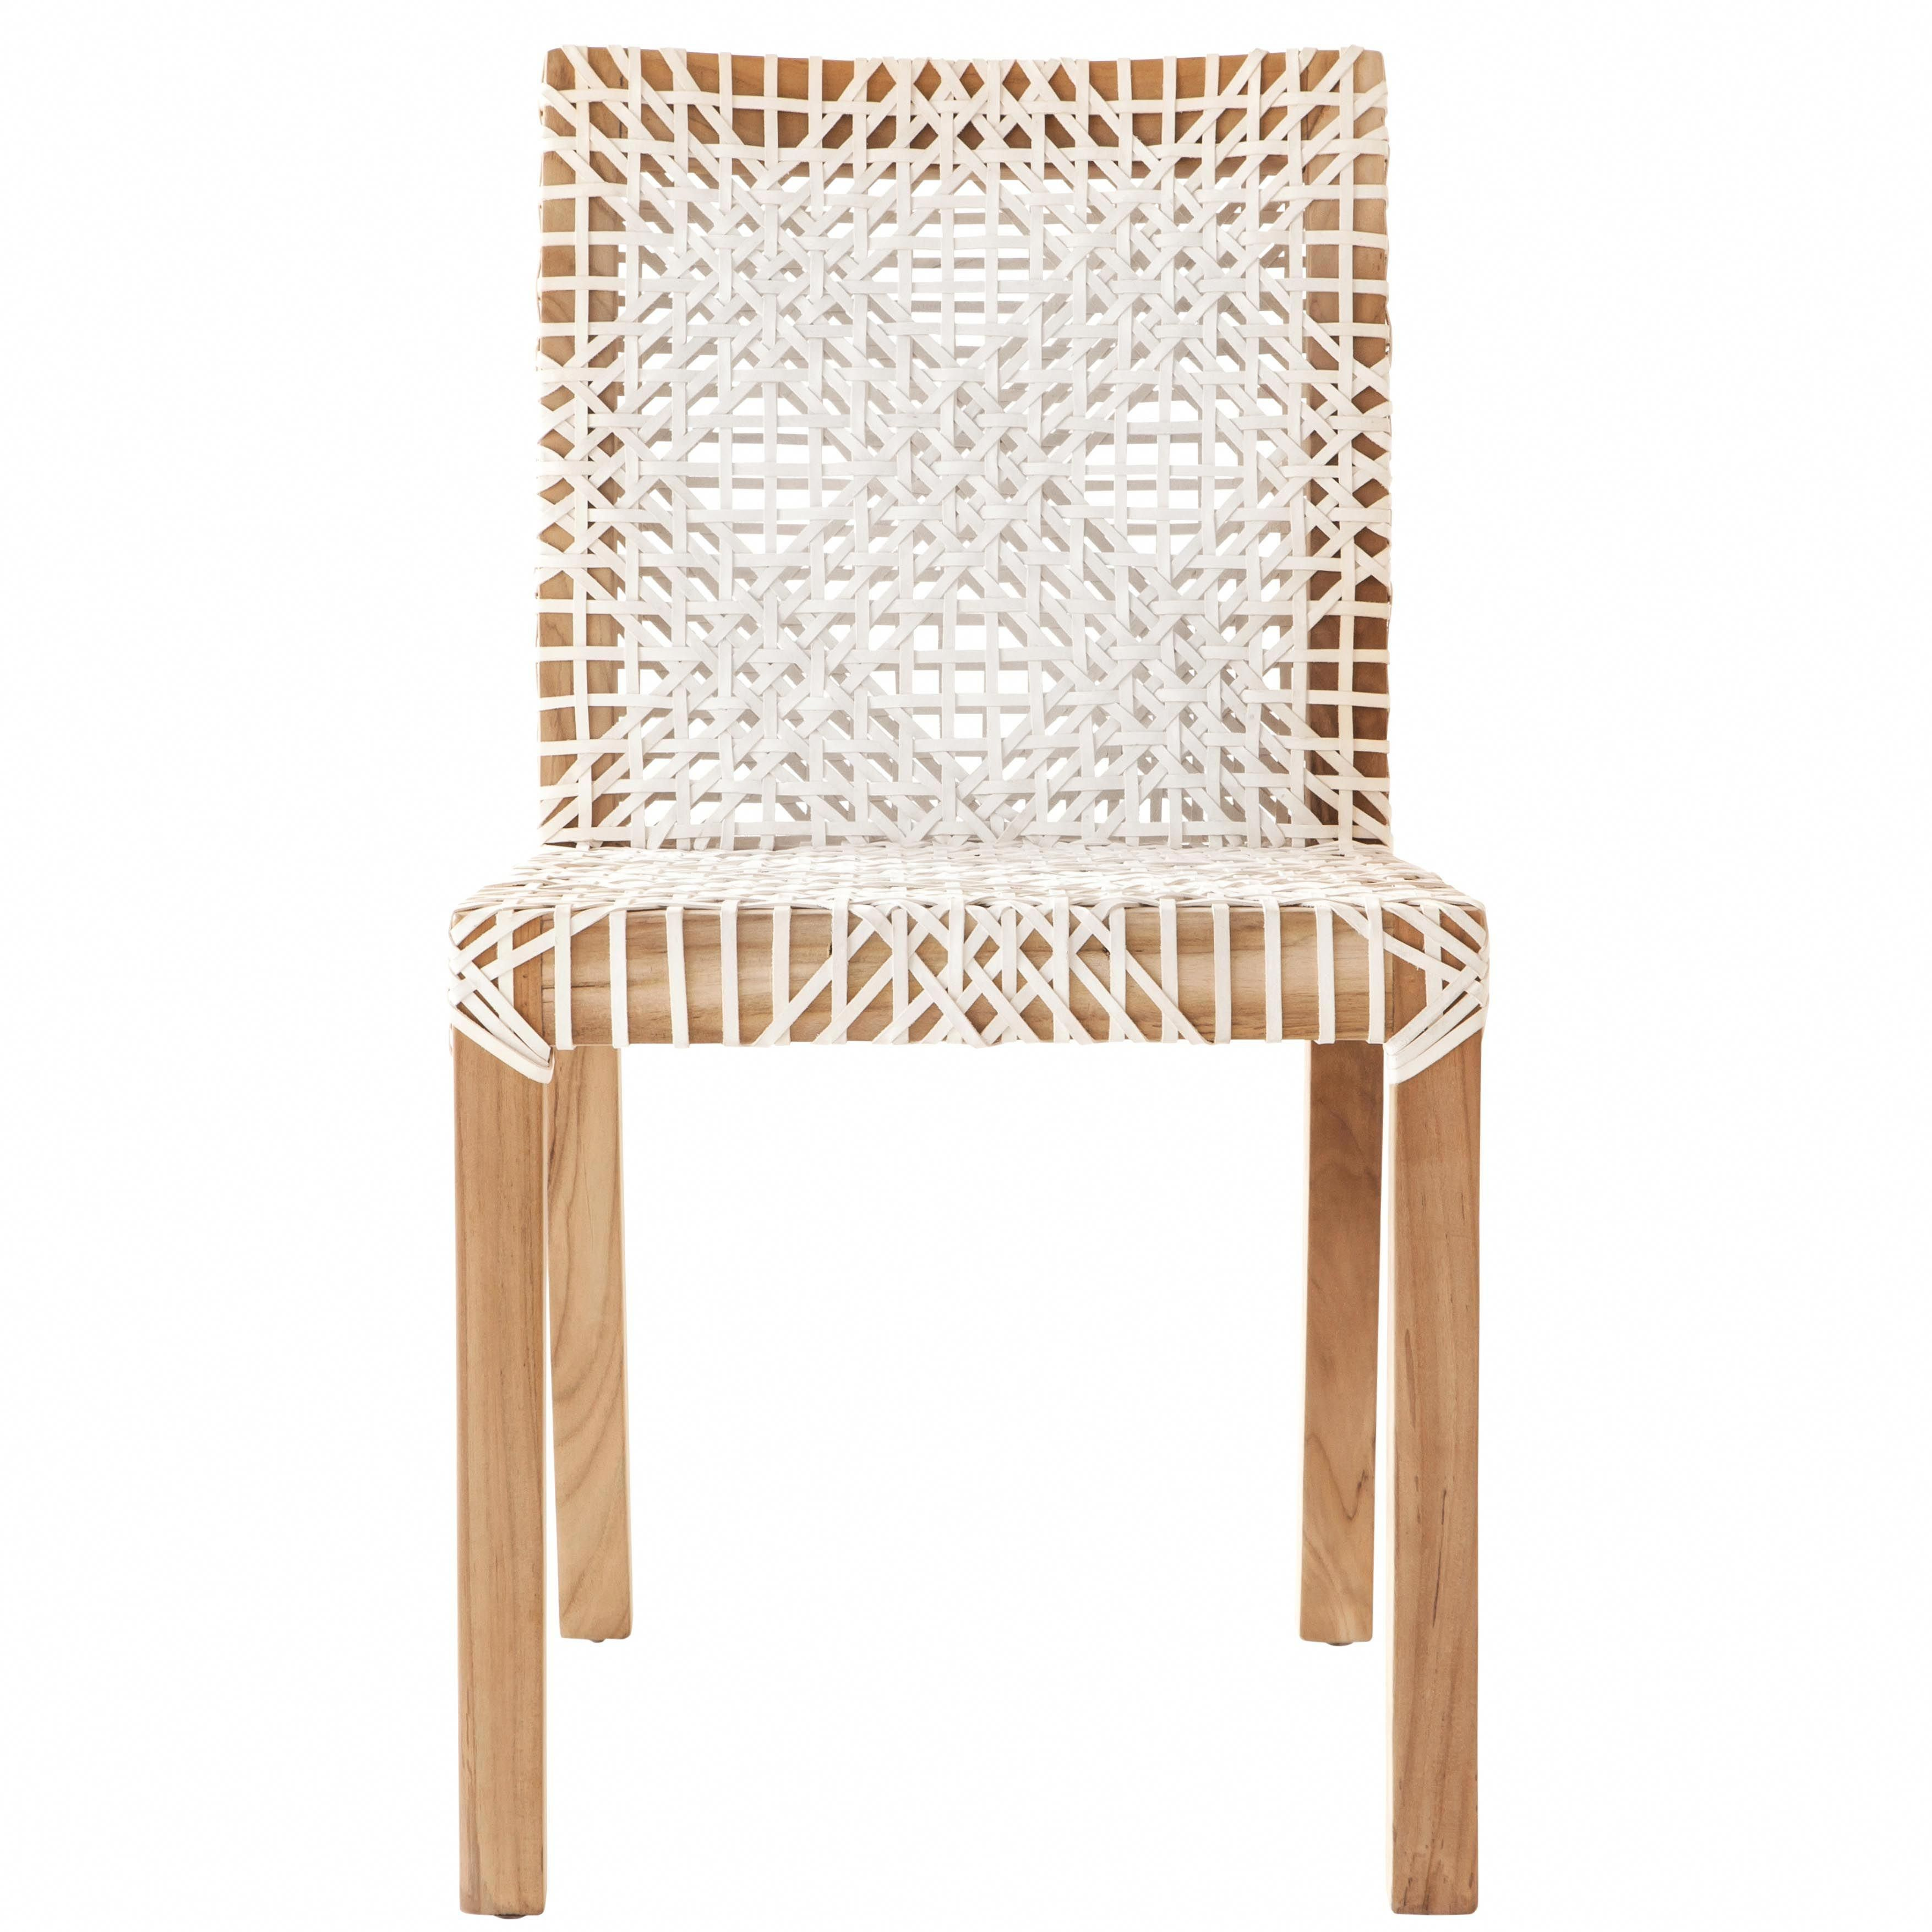 outdoor dining chairs sale convert aeron chair to stool the best woven idea for your wicker sets brisbane appealing evon leather weylandts